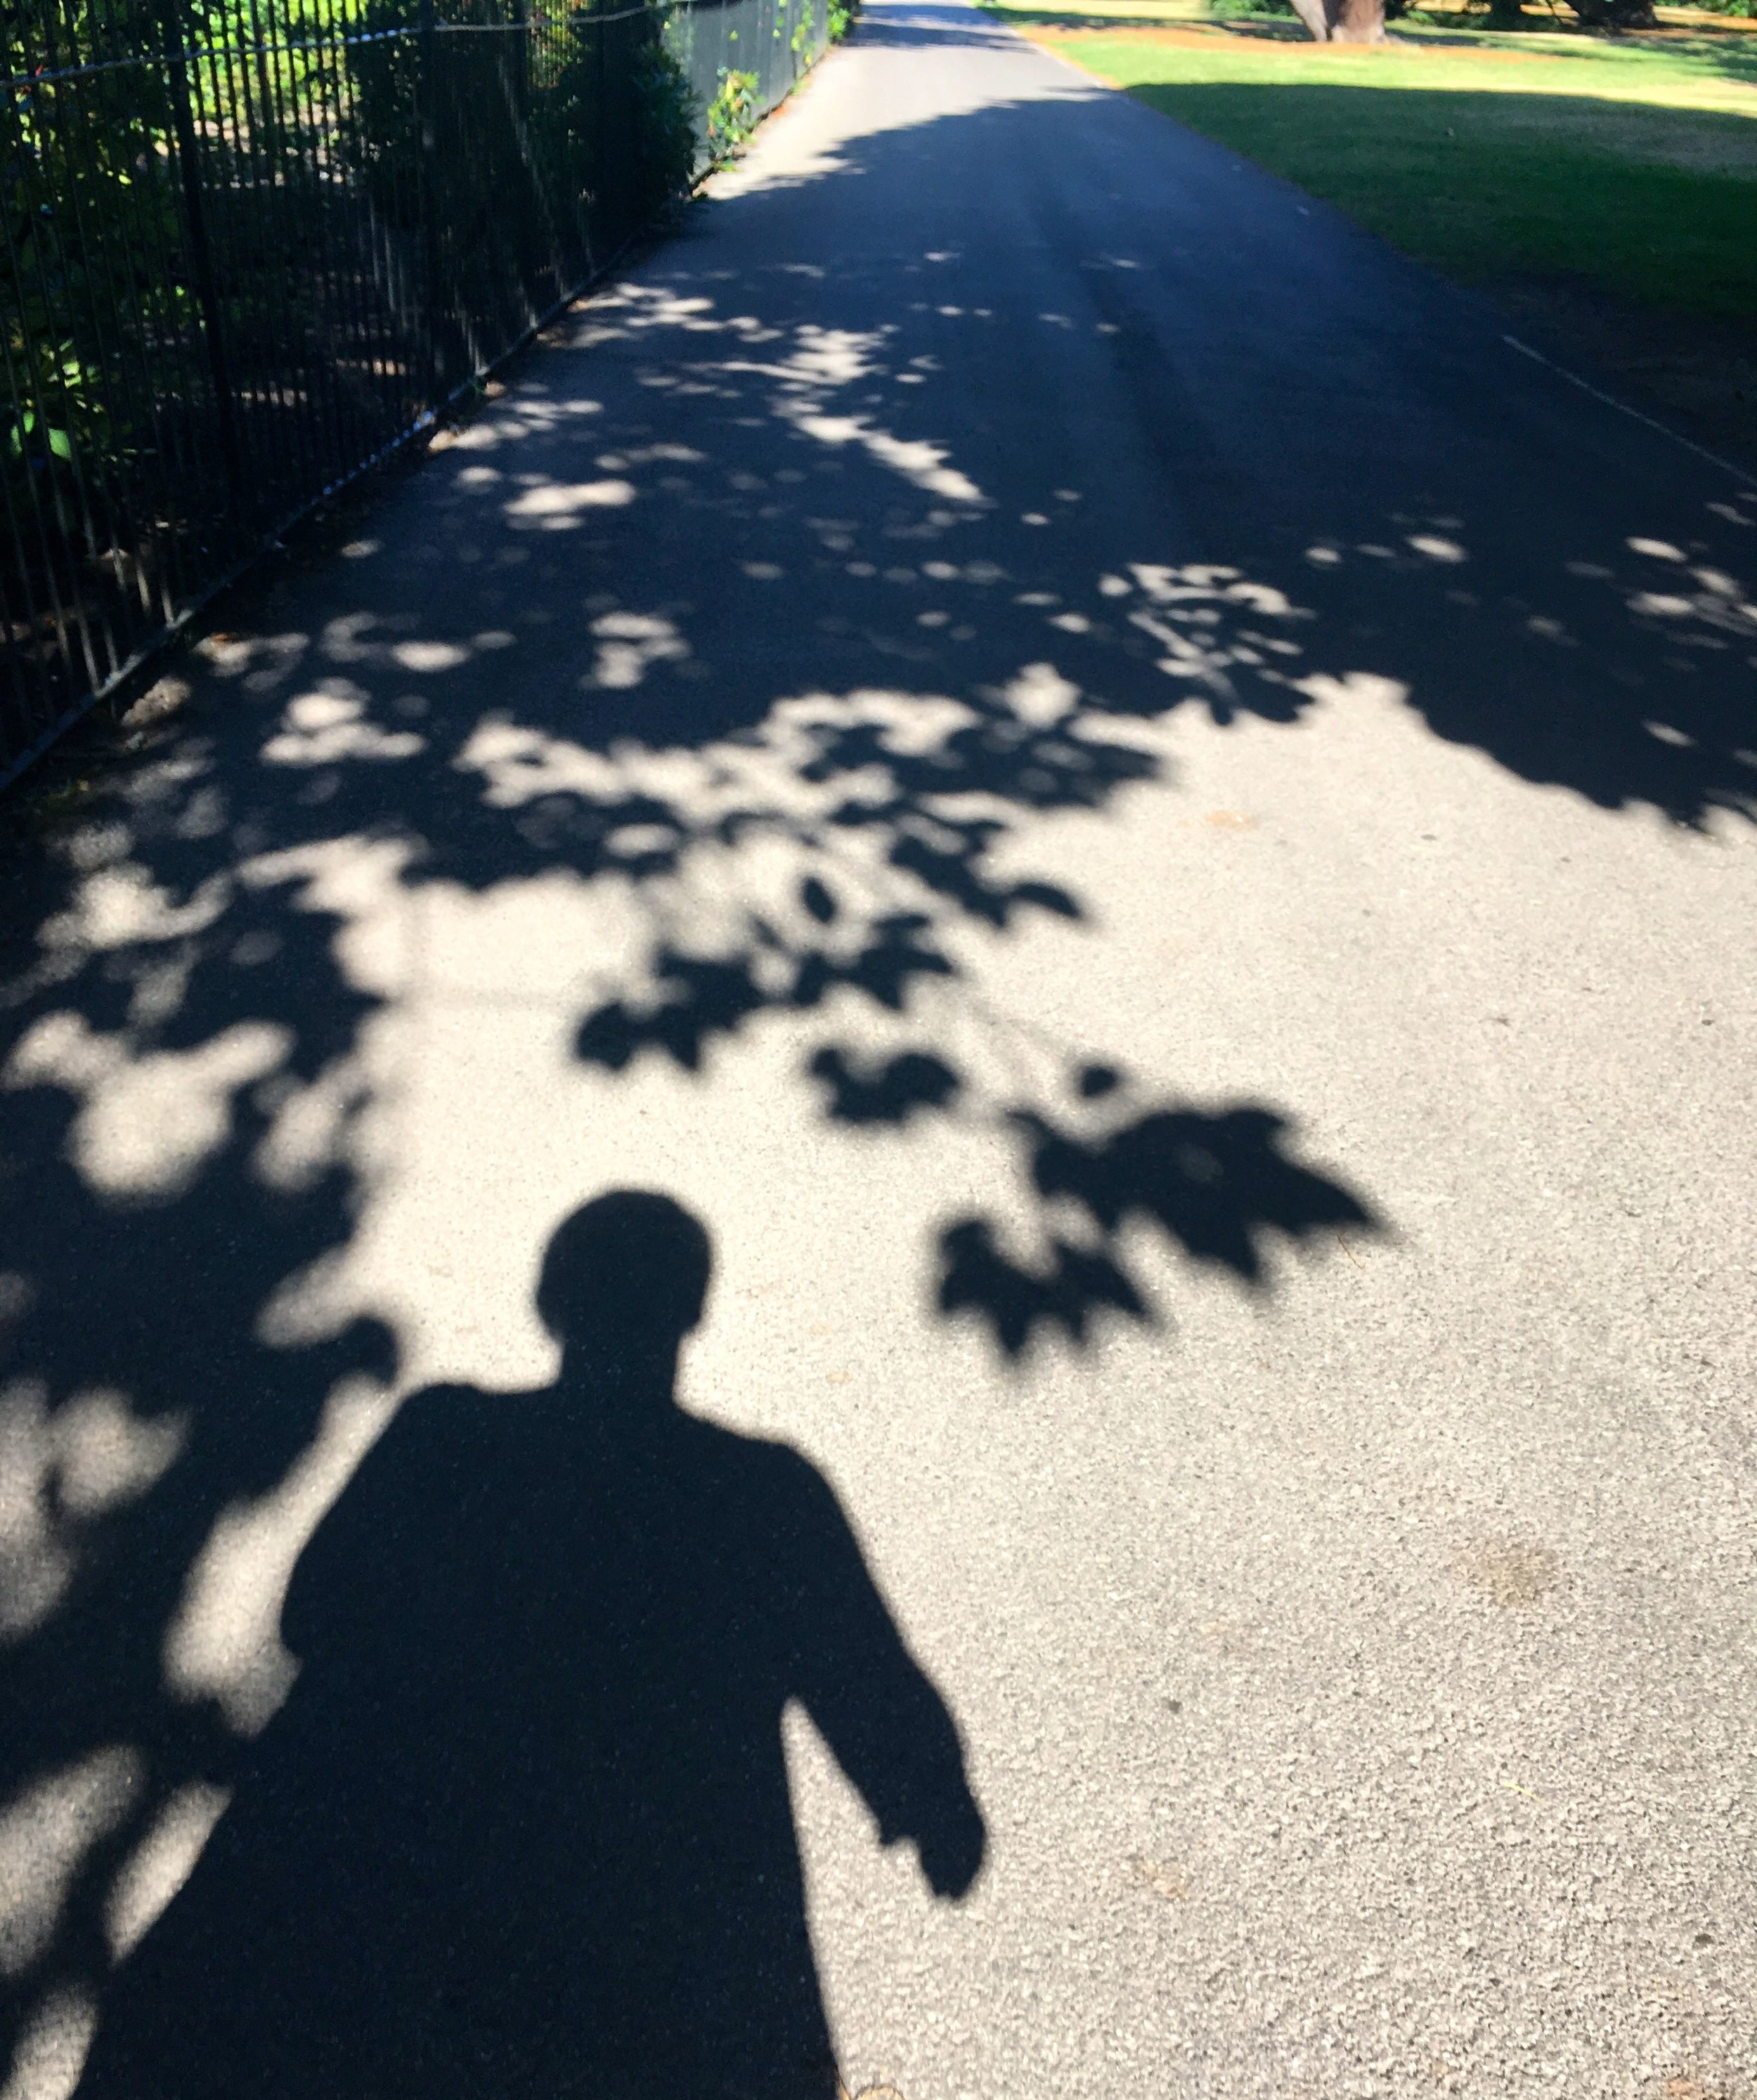 (Not quite) dancing with my shadow in Greenwich Park